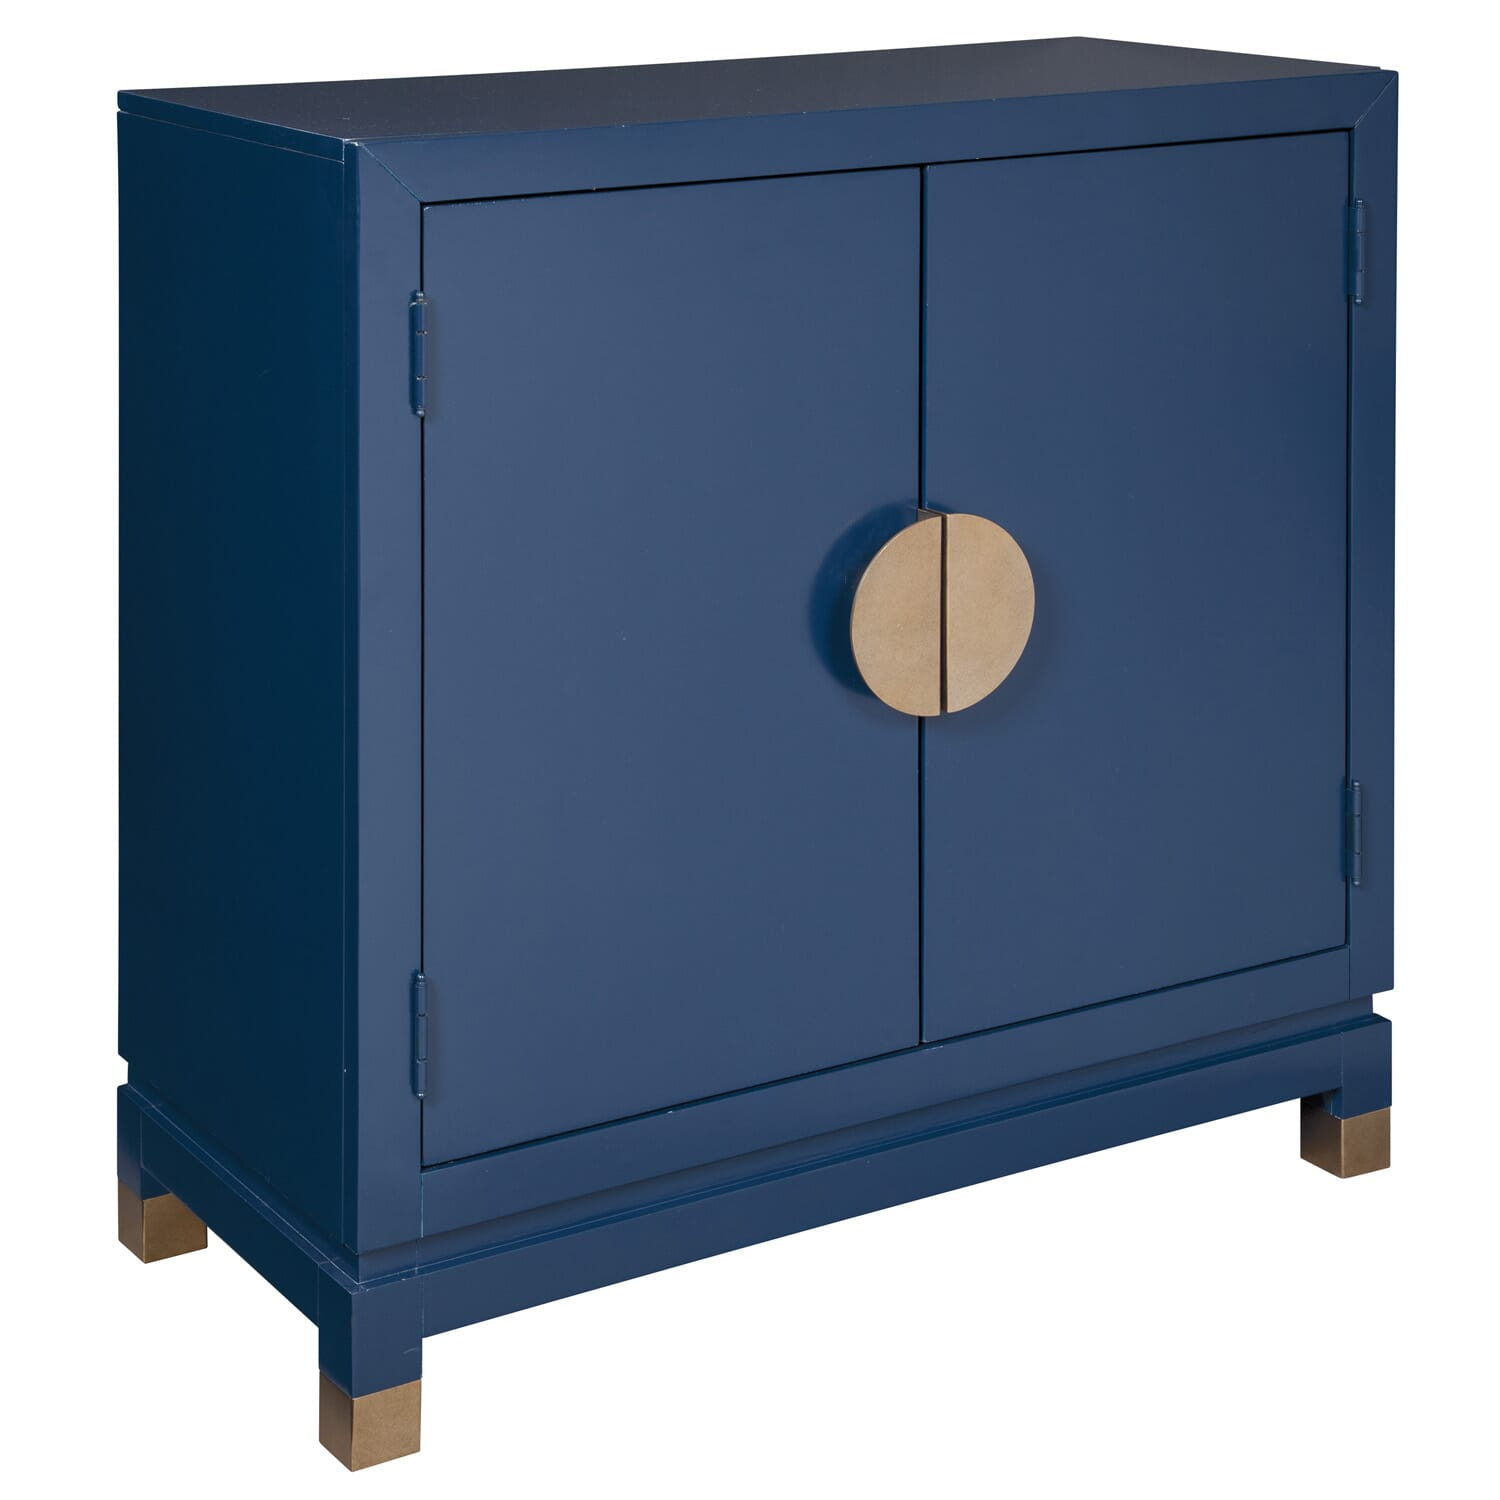 Clearance Cabinets: Closeout, Chests & Cabinets